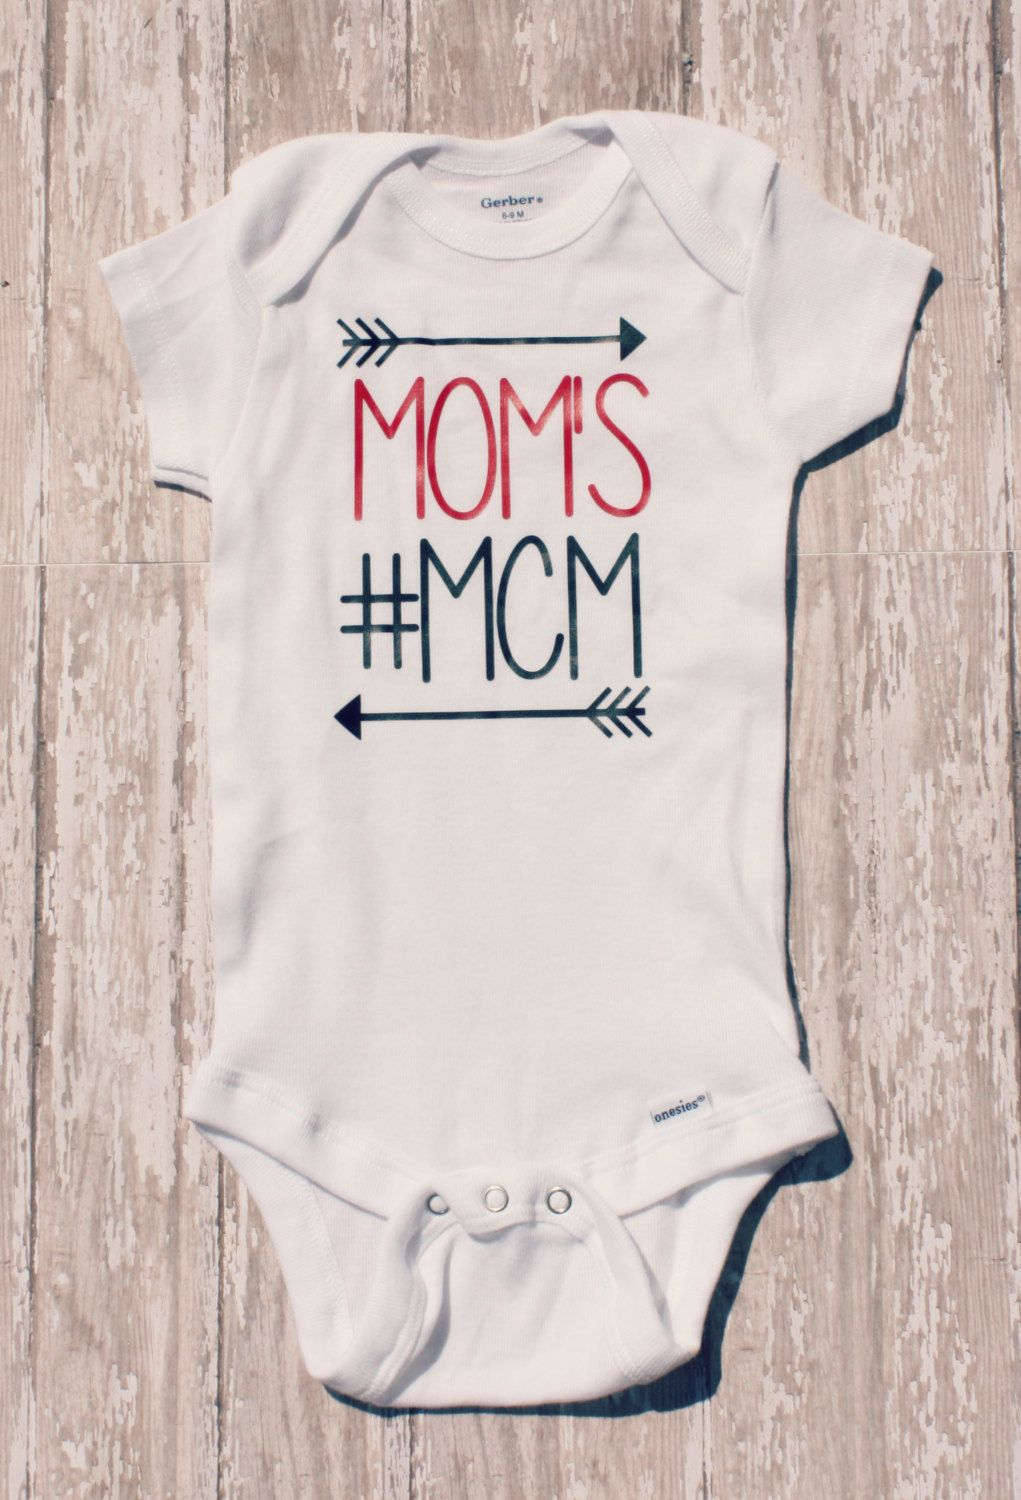 Mancrushmonday Projects Boy Onesie Baby Cool Baby Stuff